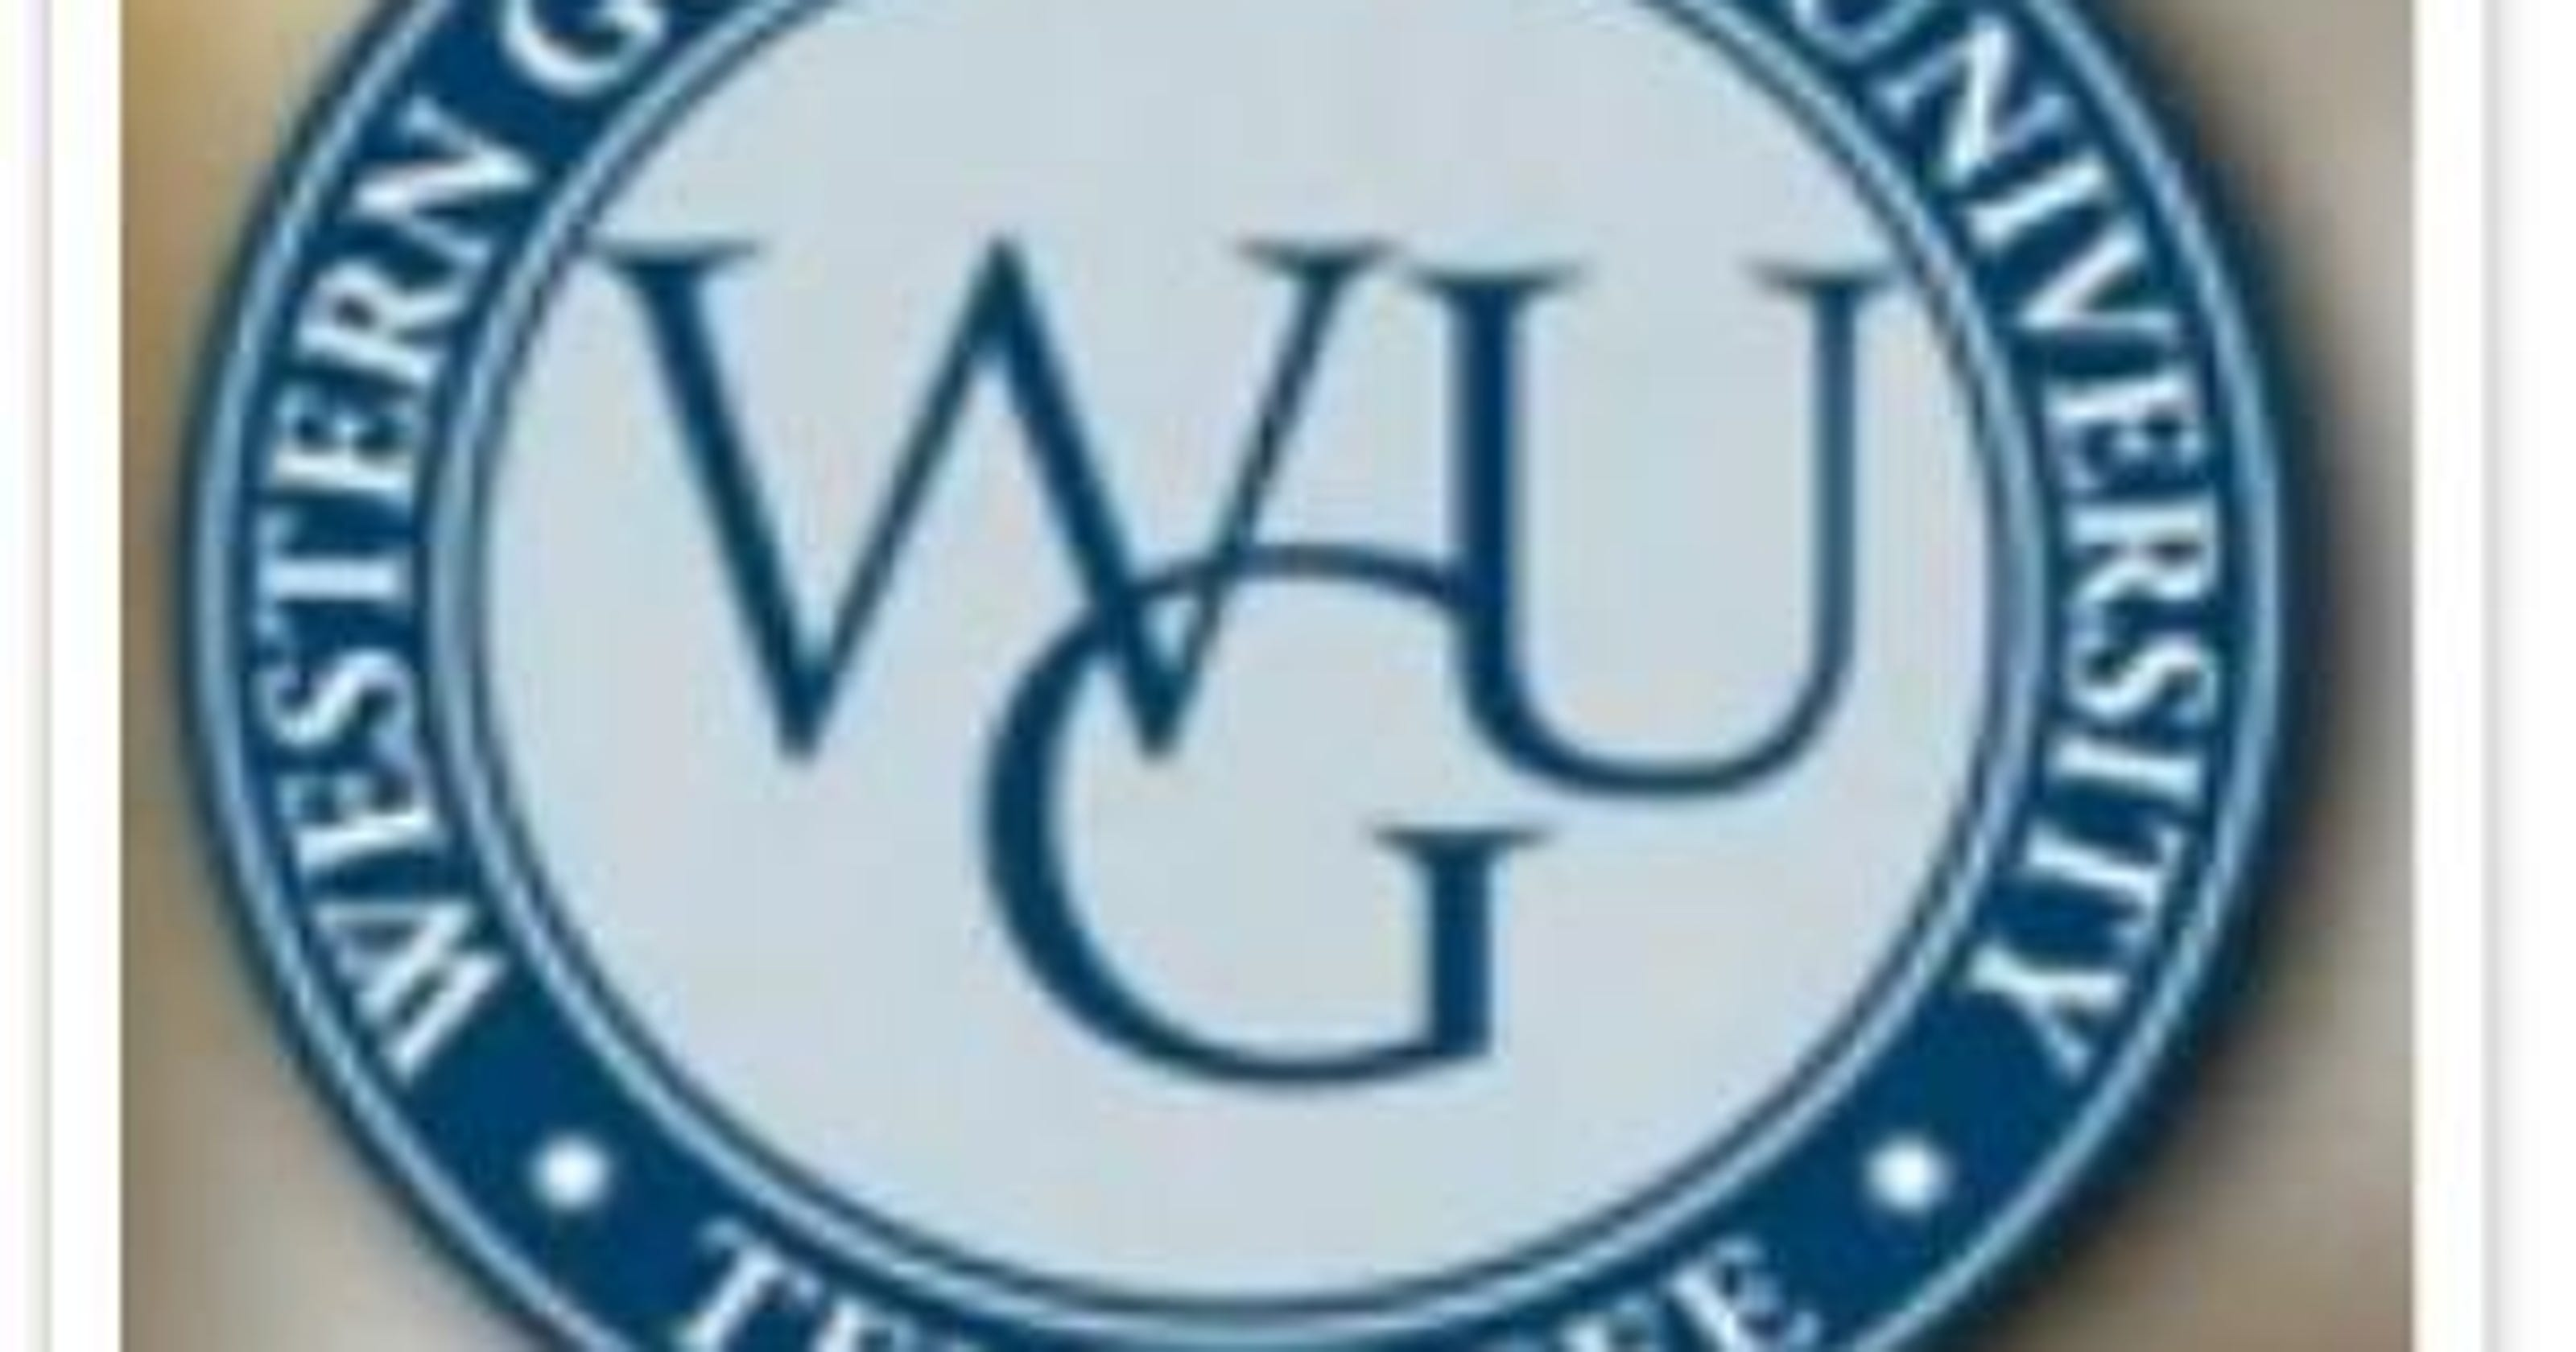 Online university WGU sees state's Reconnect scholarship as an